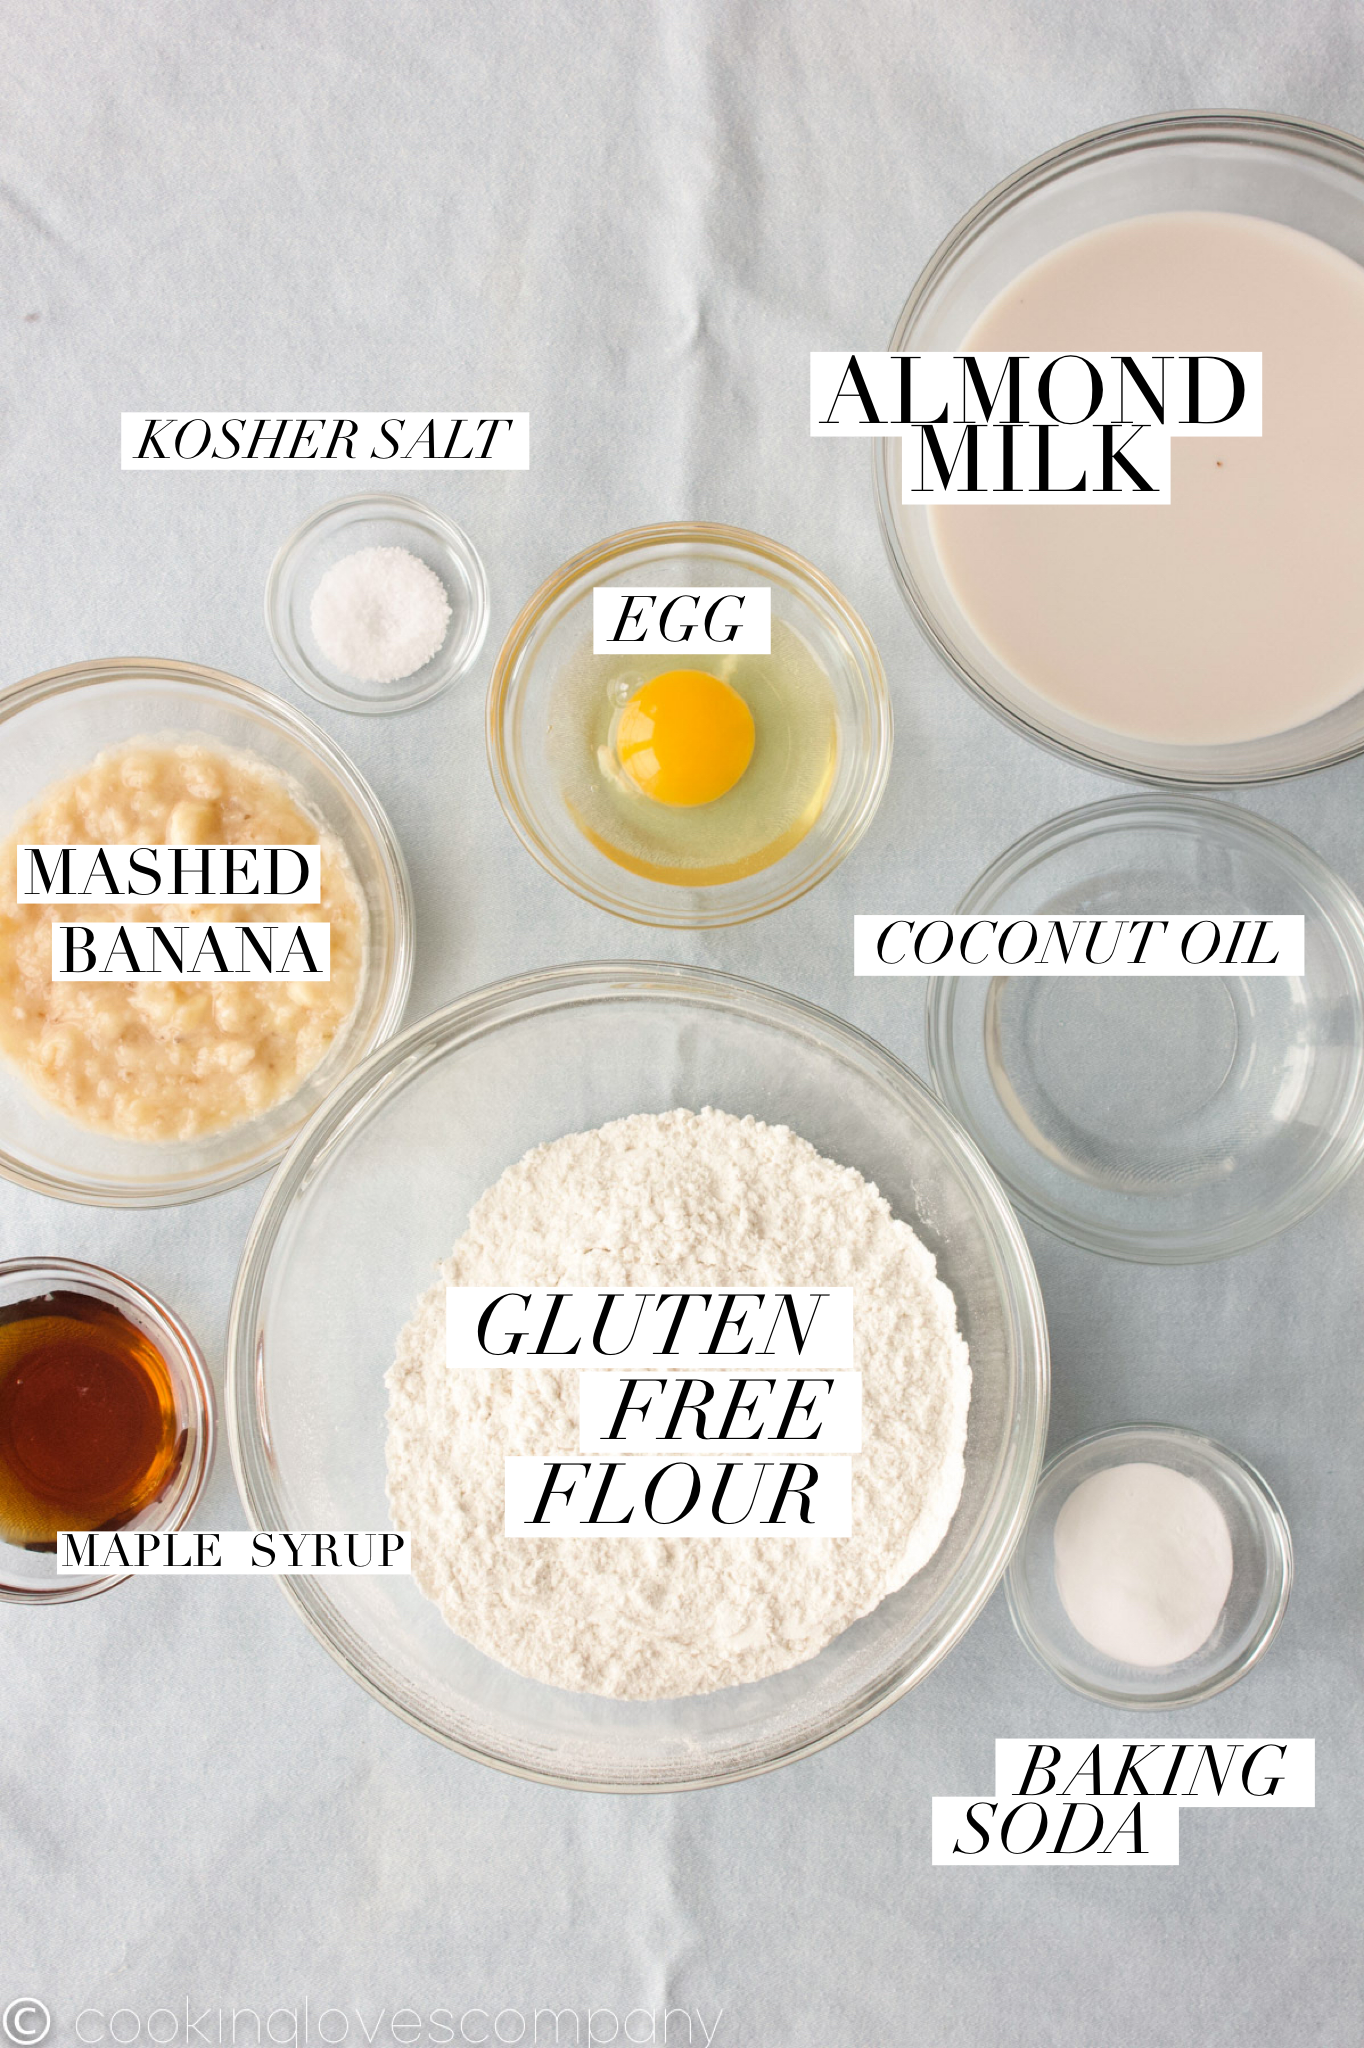 8 glass bowls with individual pancake ingredients in each one